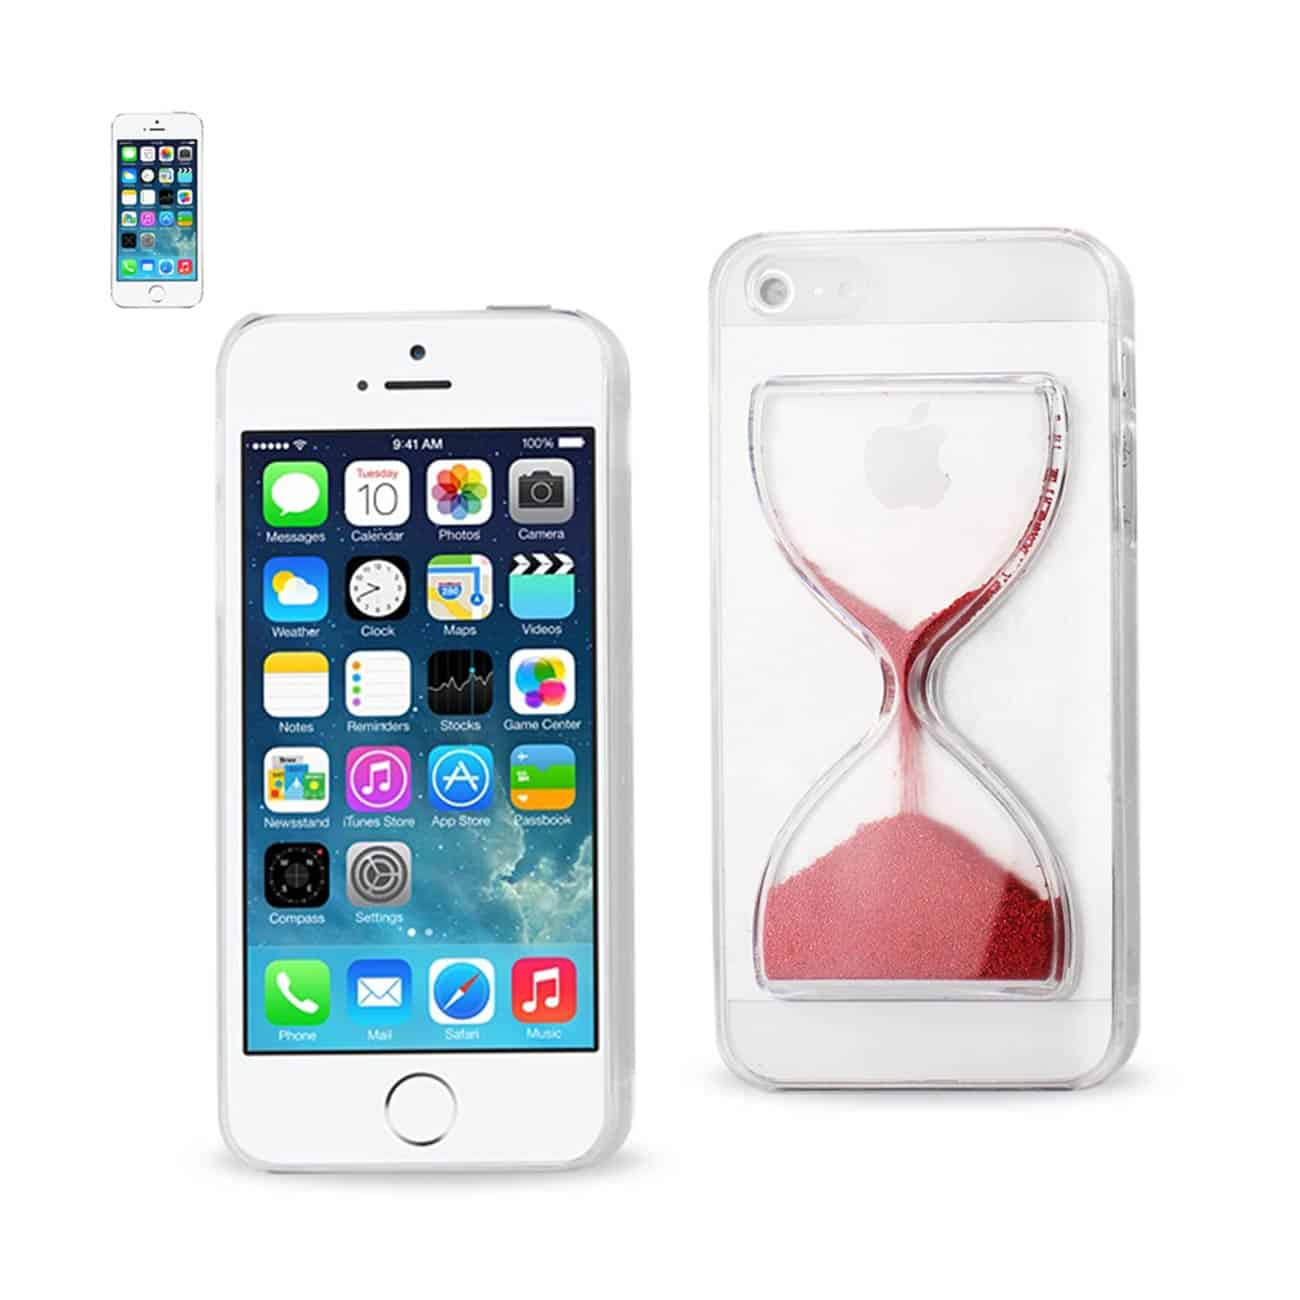 IPHONE SE/ 5S/ 5 3D SAND CLOCK CLEAR CASE IN RED